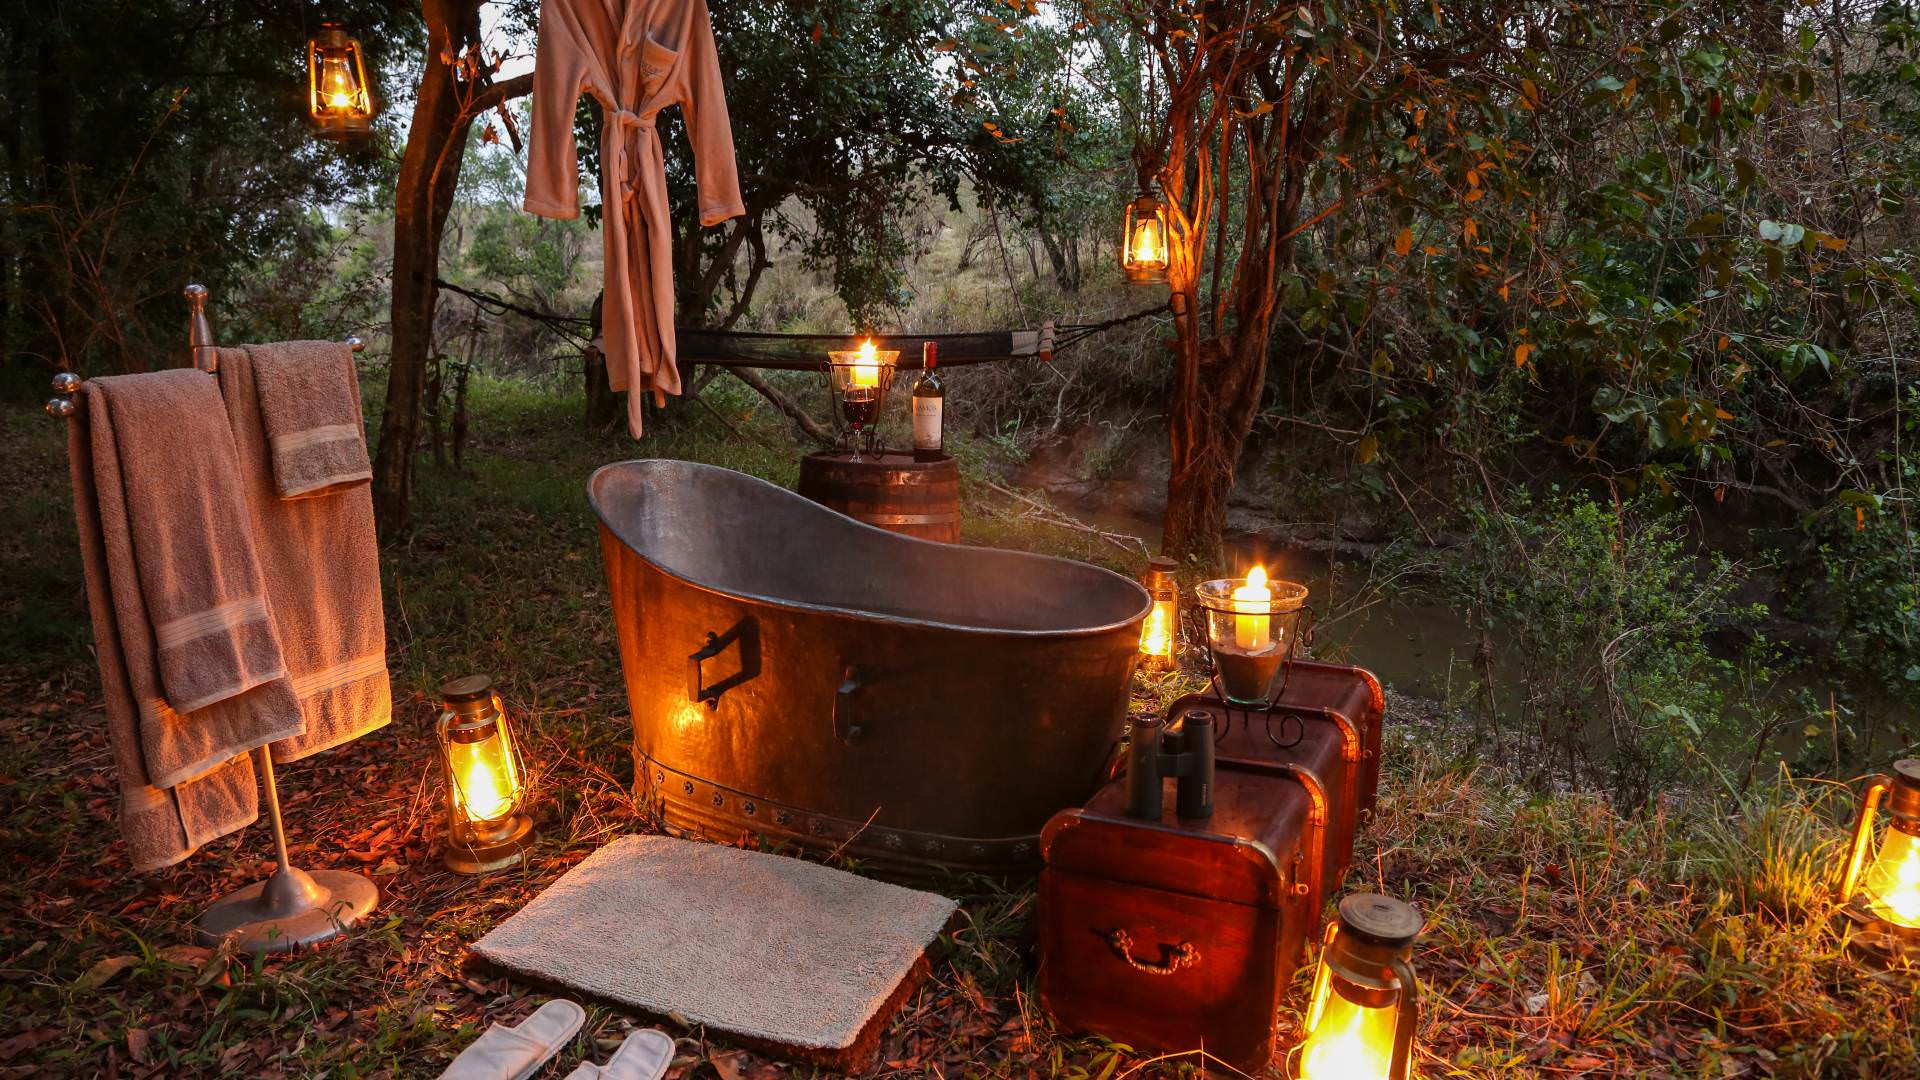 Bath time at mara expeditions camp